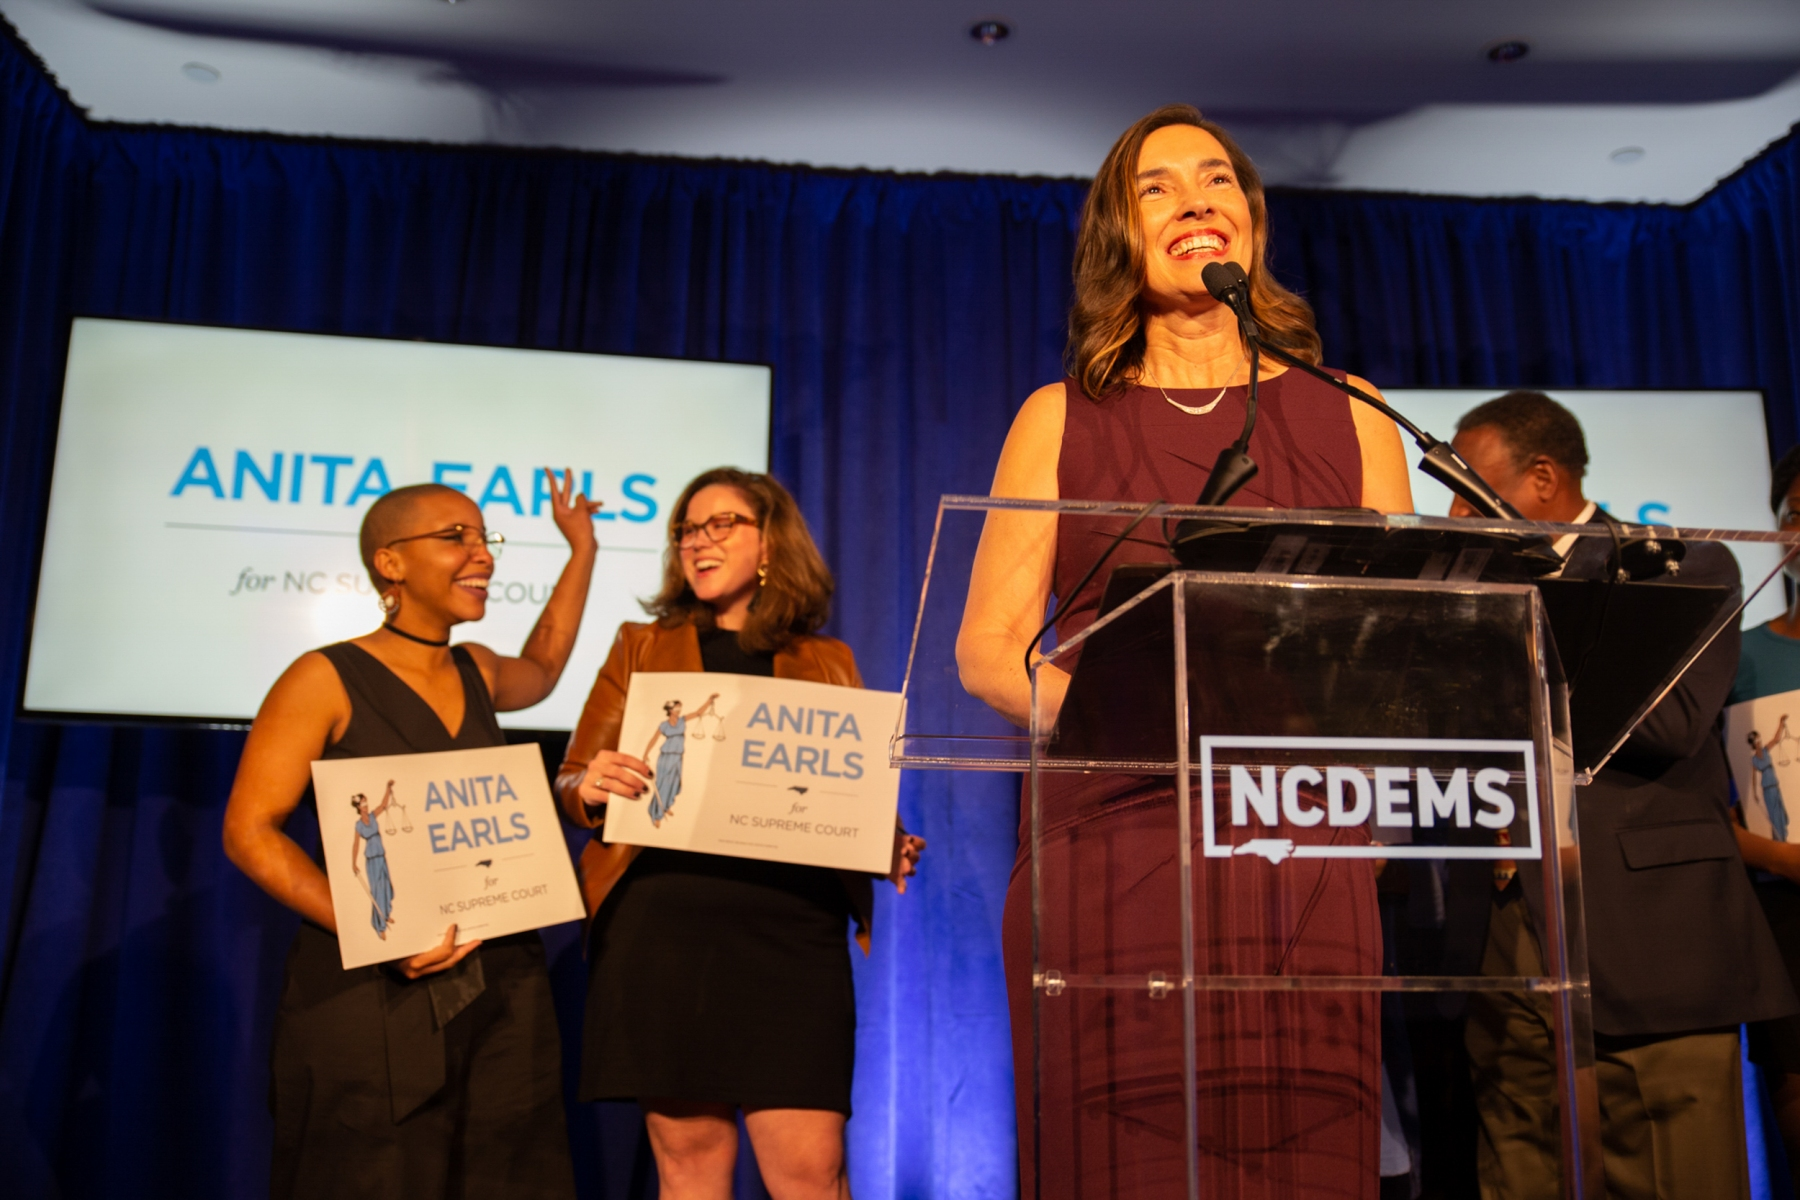 """Anita Earls takes the stage to accept the role of being the 100th justice of the N.C. Supreme Court at the North Carolina Democratic Party headquarters as her supporters cheer below. Juju Holton and Caroline Spencer, who both worked on the campaign, shed tears and celebrate behind her.""""We have a president who believes that he can by executive order erase the 14th amendment to the U.S. constitution,"""" Earls says in her speech. """"We have misguided partisans in our state who believe they should impeach justices that don't rule in their favor. I promise to resist partisan attacks on the judicial branch, which must remain independent and impartial in order for our democracy to succeed and thrive. Thank you for believing in the possibility that a civil rights attorney can run a state-wide campaign and win the trust of voters. Thank you for believing that you can make a difference because you have. And now, let's move forward without fear or favor."""""""